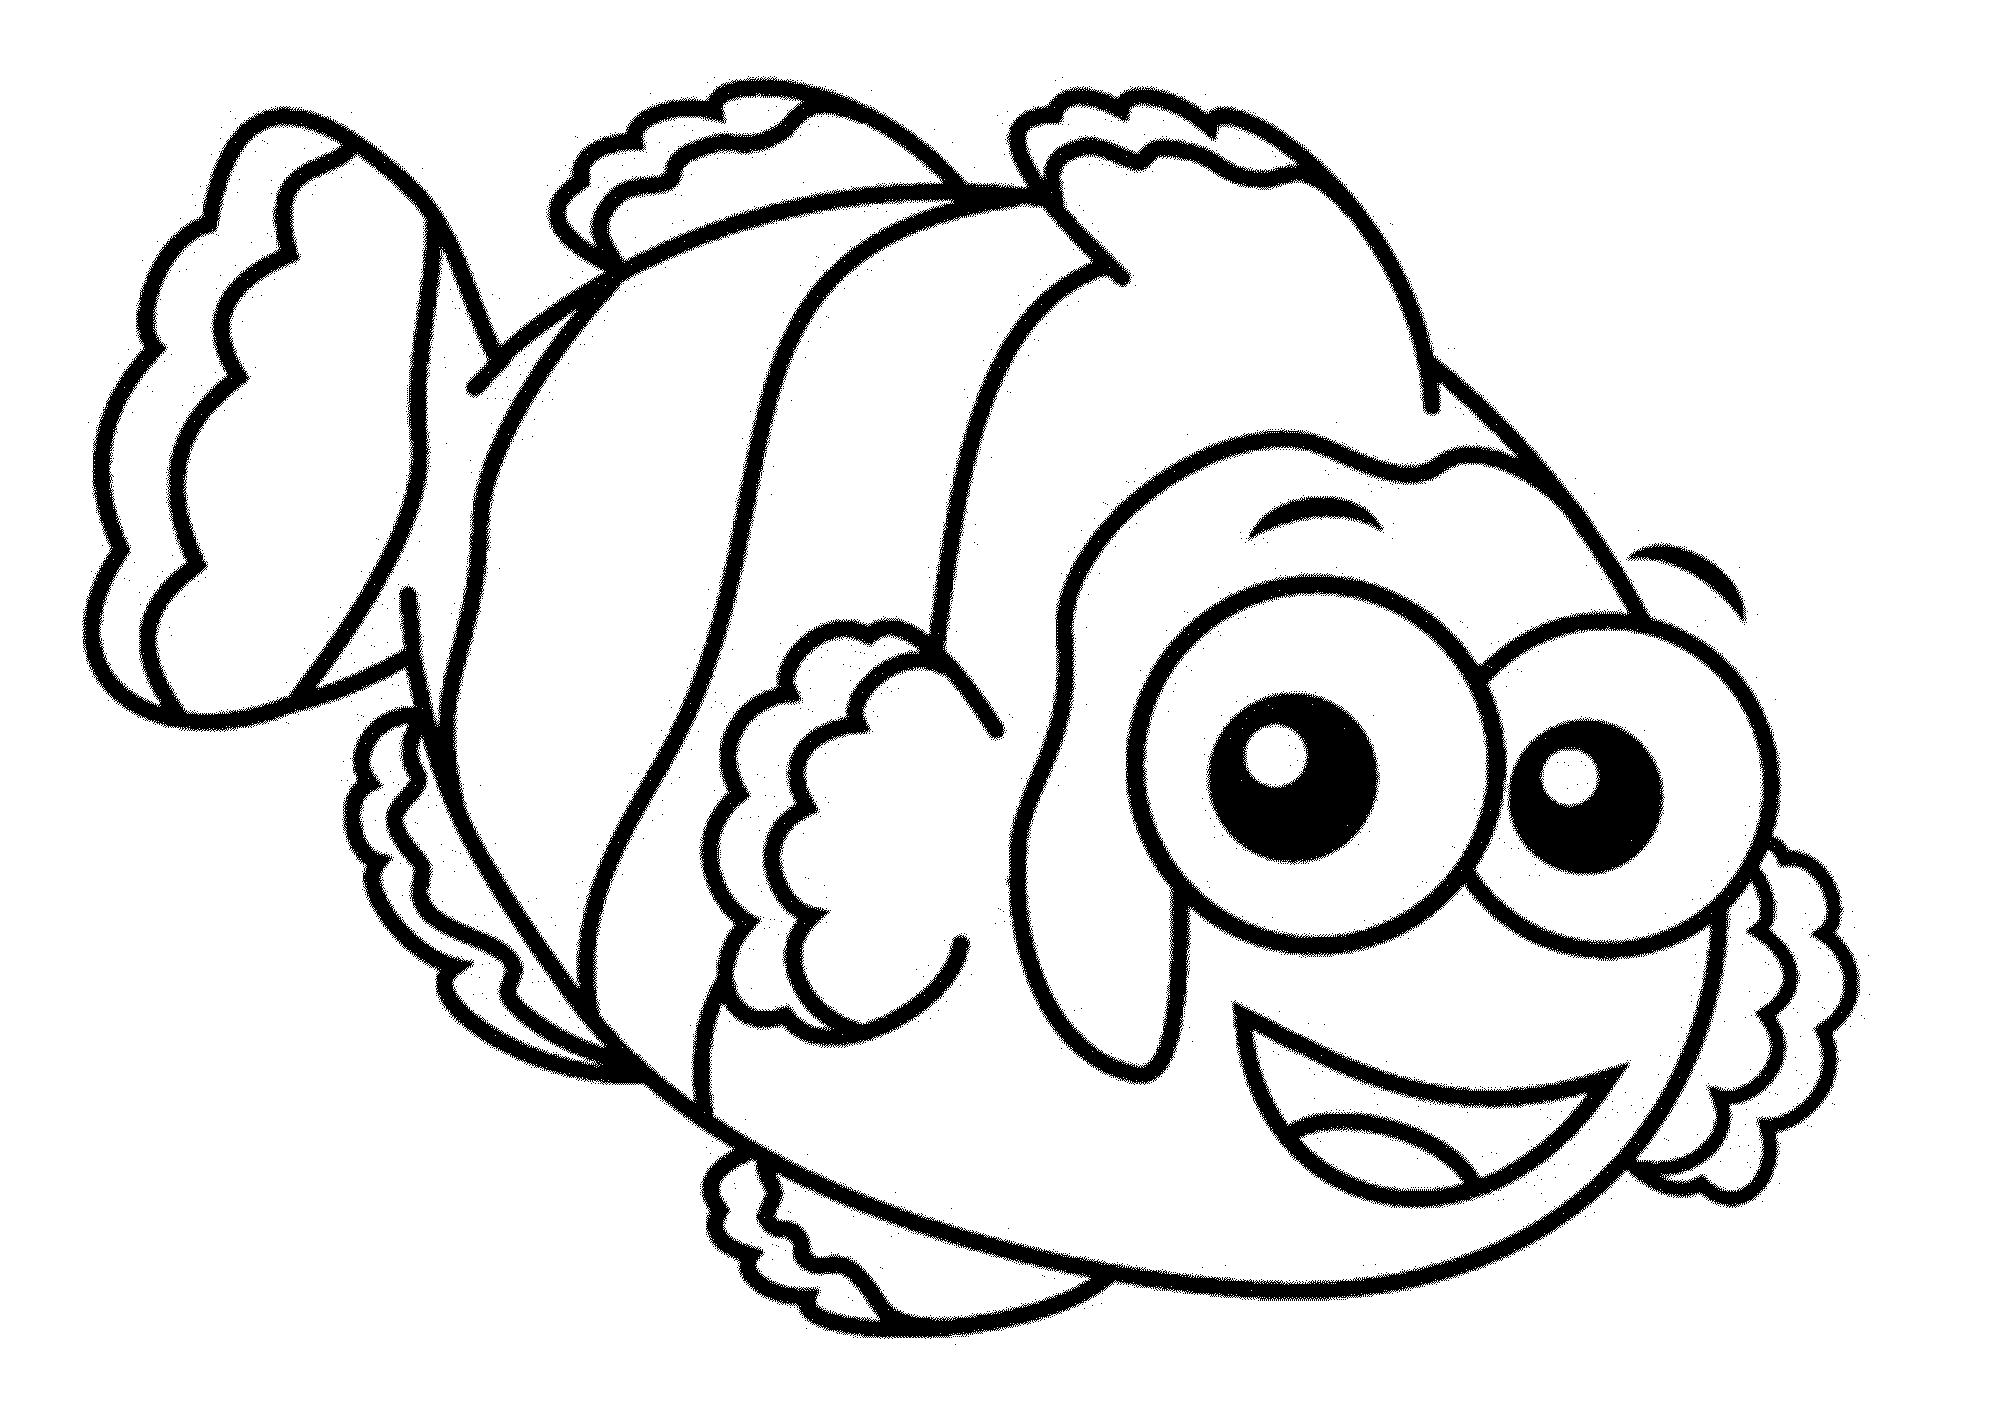 Printable Kids Colouring Pages